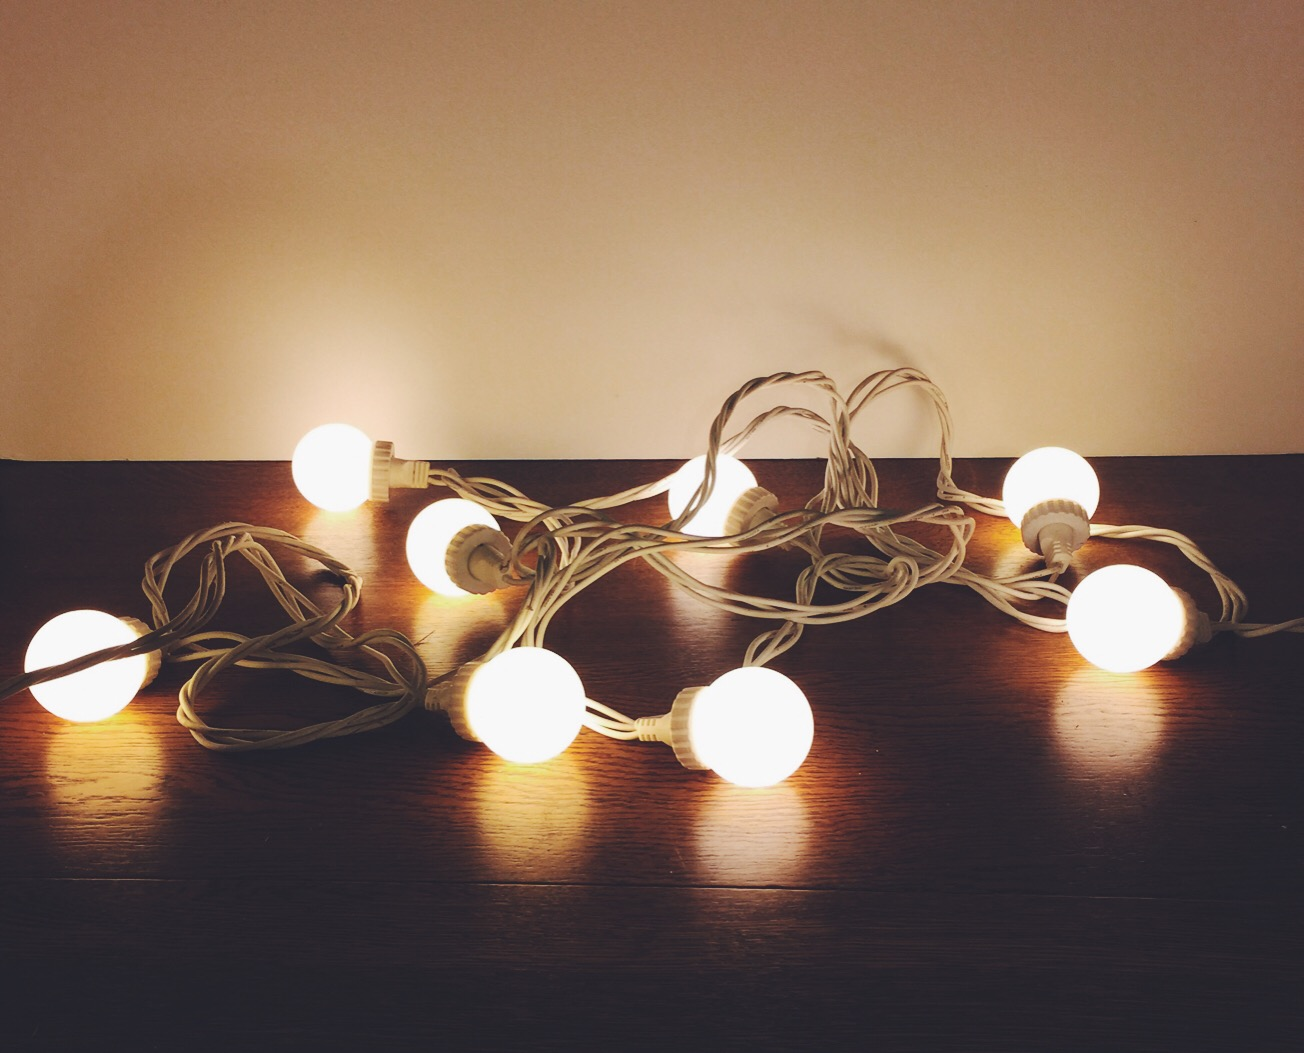 Festoon lighting £40 for 50 Metres